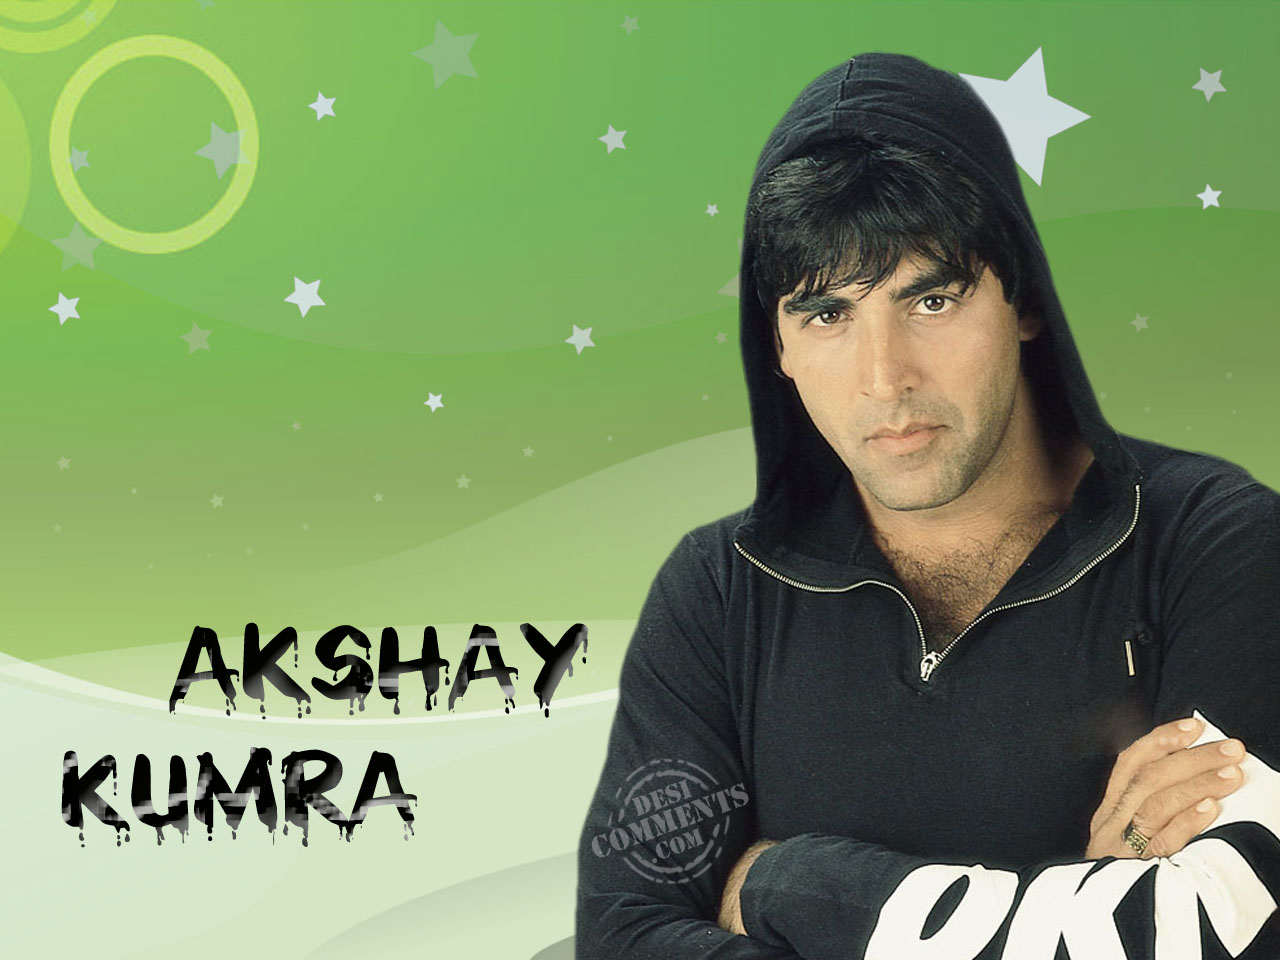 Akshay Kumar Wallpapers Akshay Kumar Wallpapers Bollywood Wallpapers x